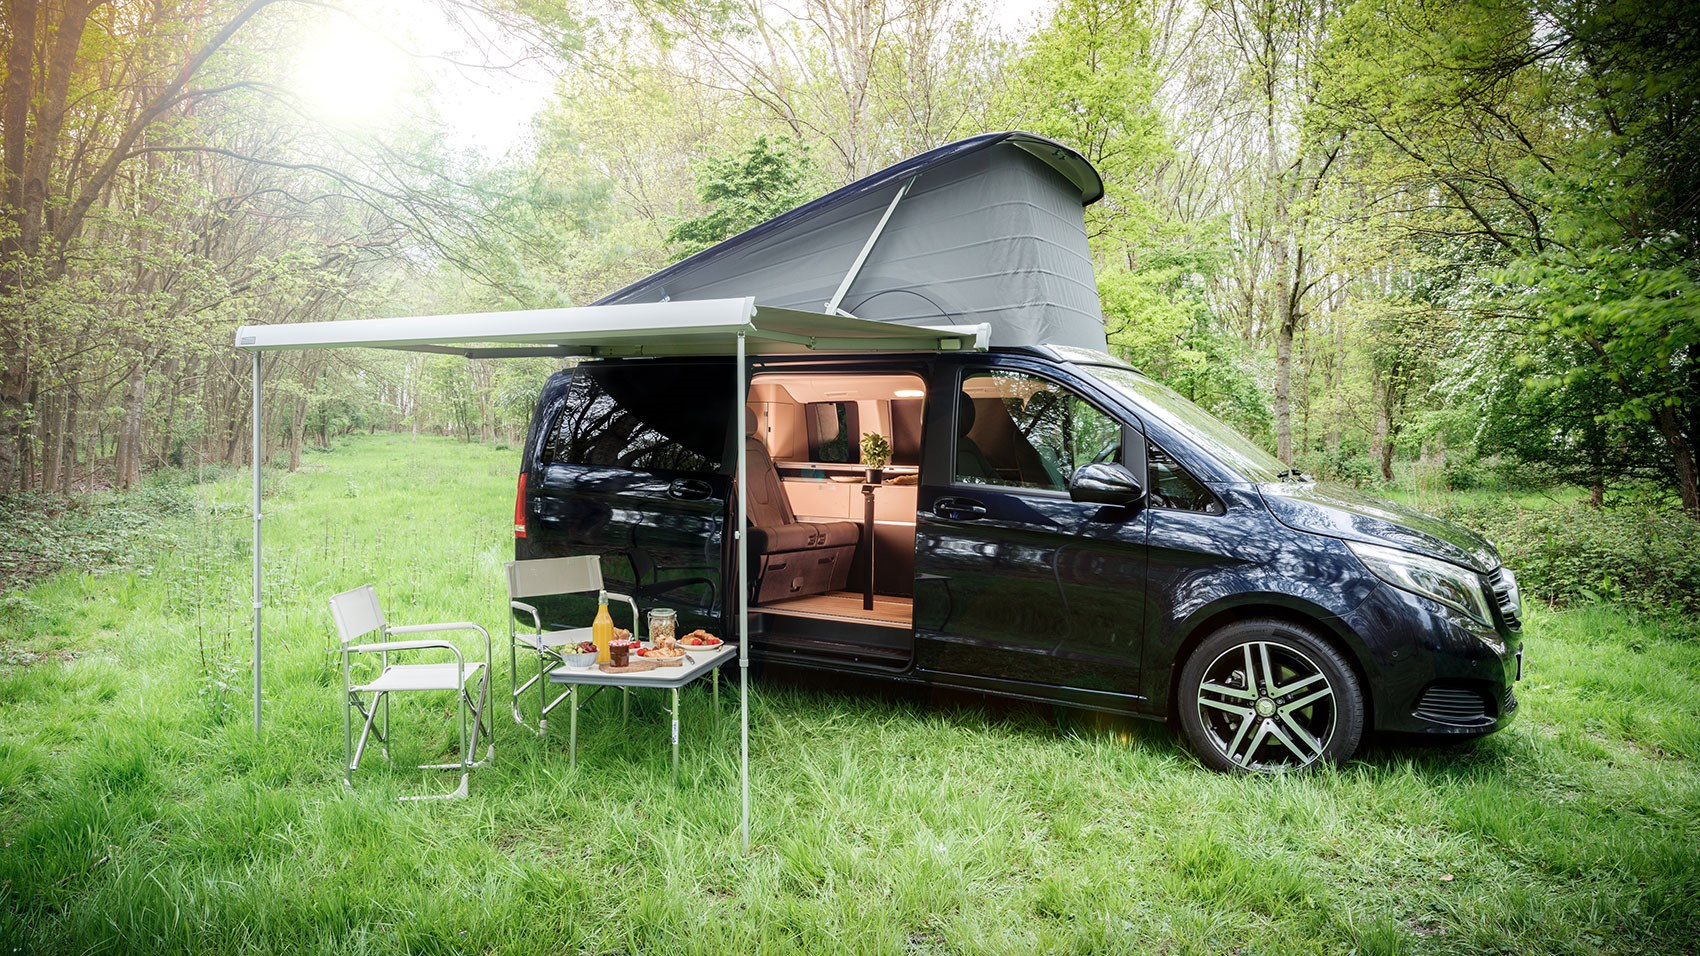 Volkswagen Camping Van 2017 >> Mercedes-Benz V-class Marco Polo (2017) review | CAR Magazine